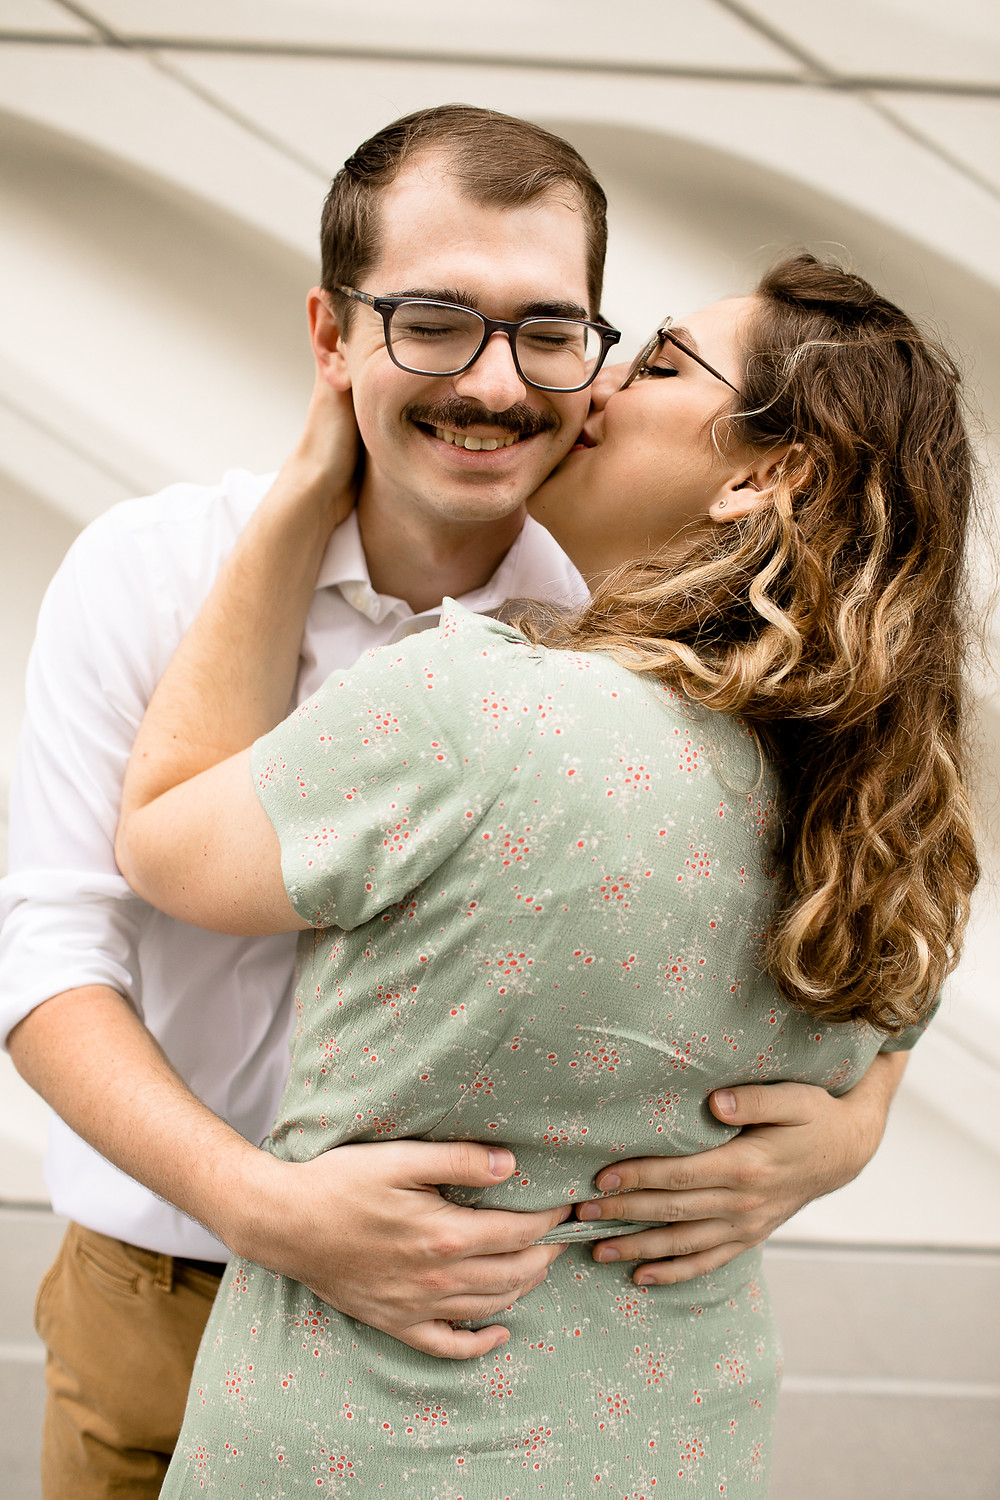 woman kissing man on the cheek and the man smiling